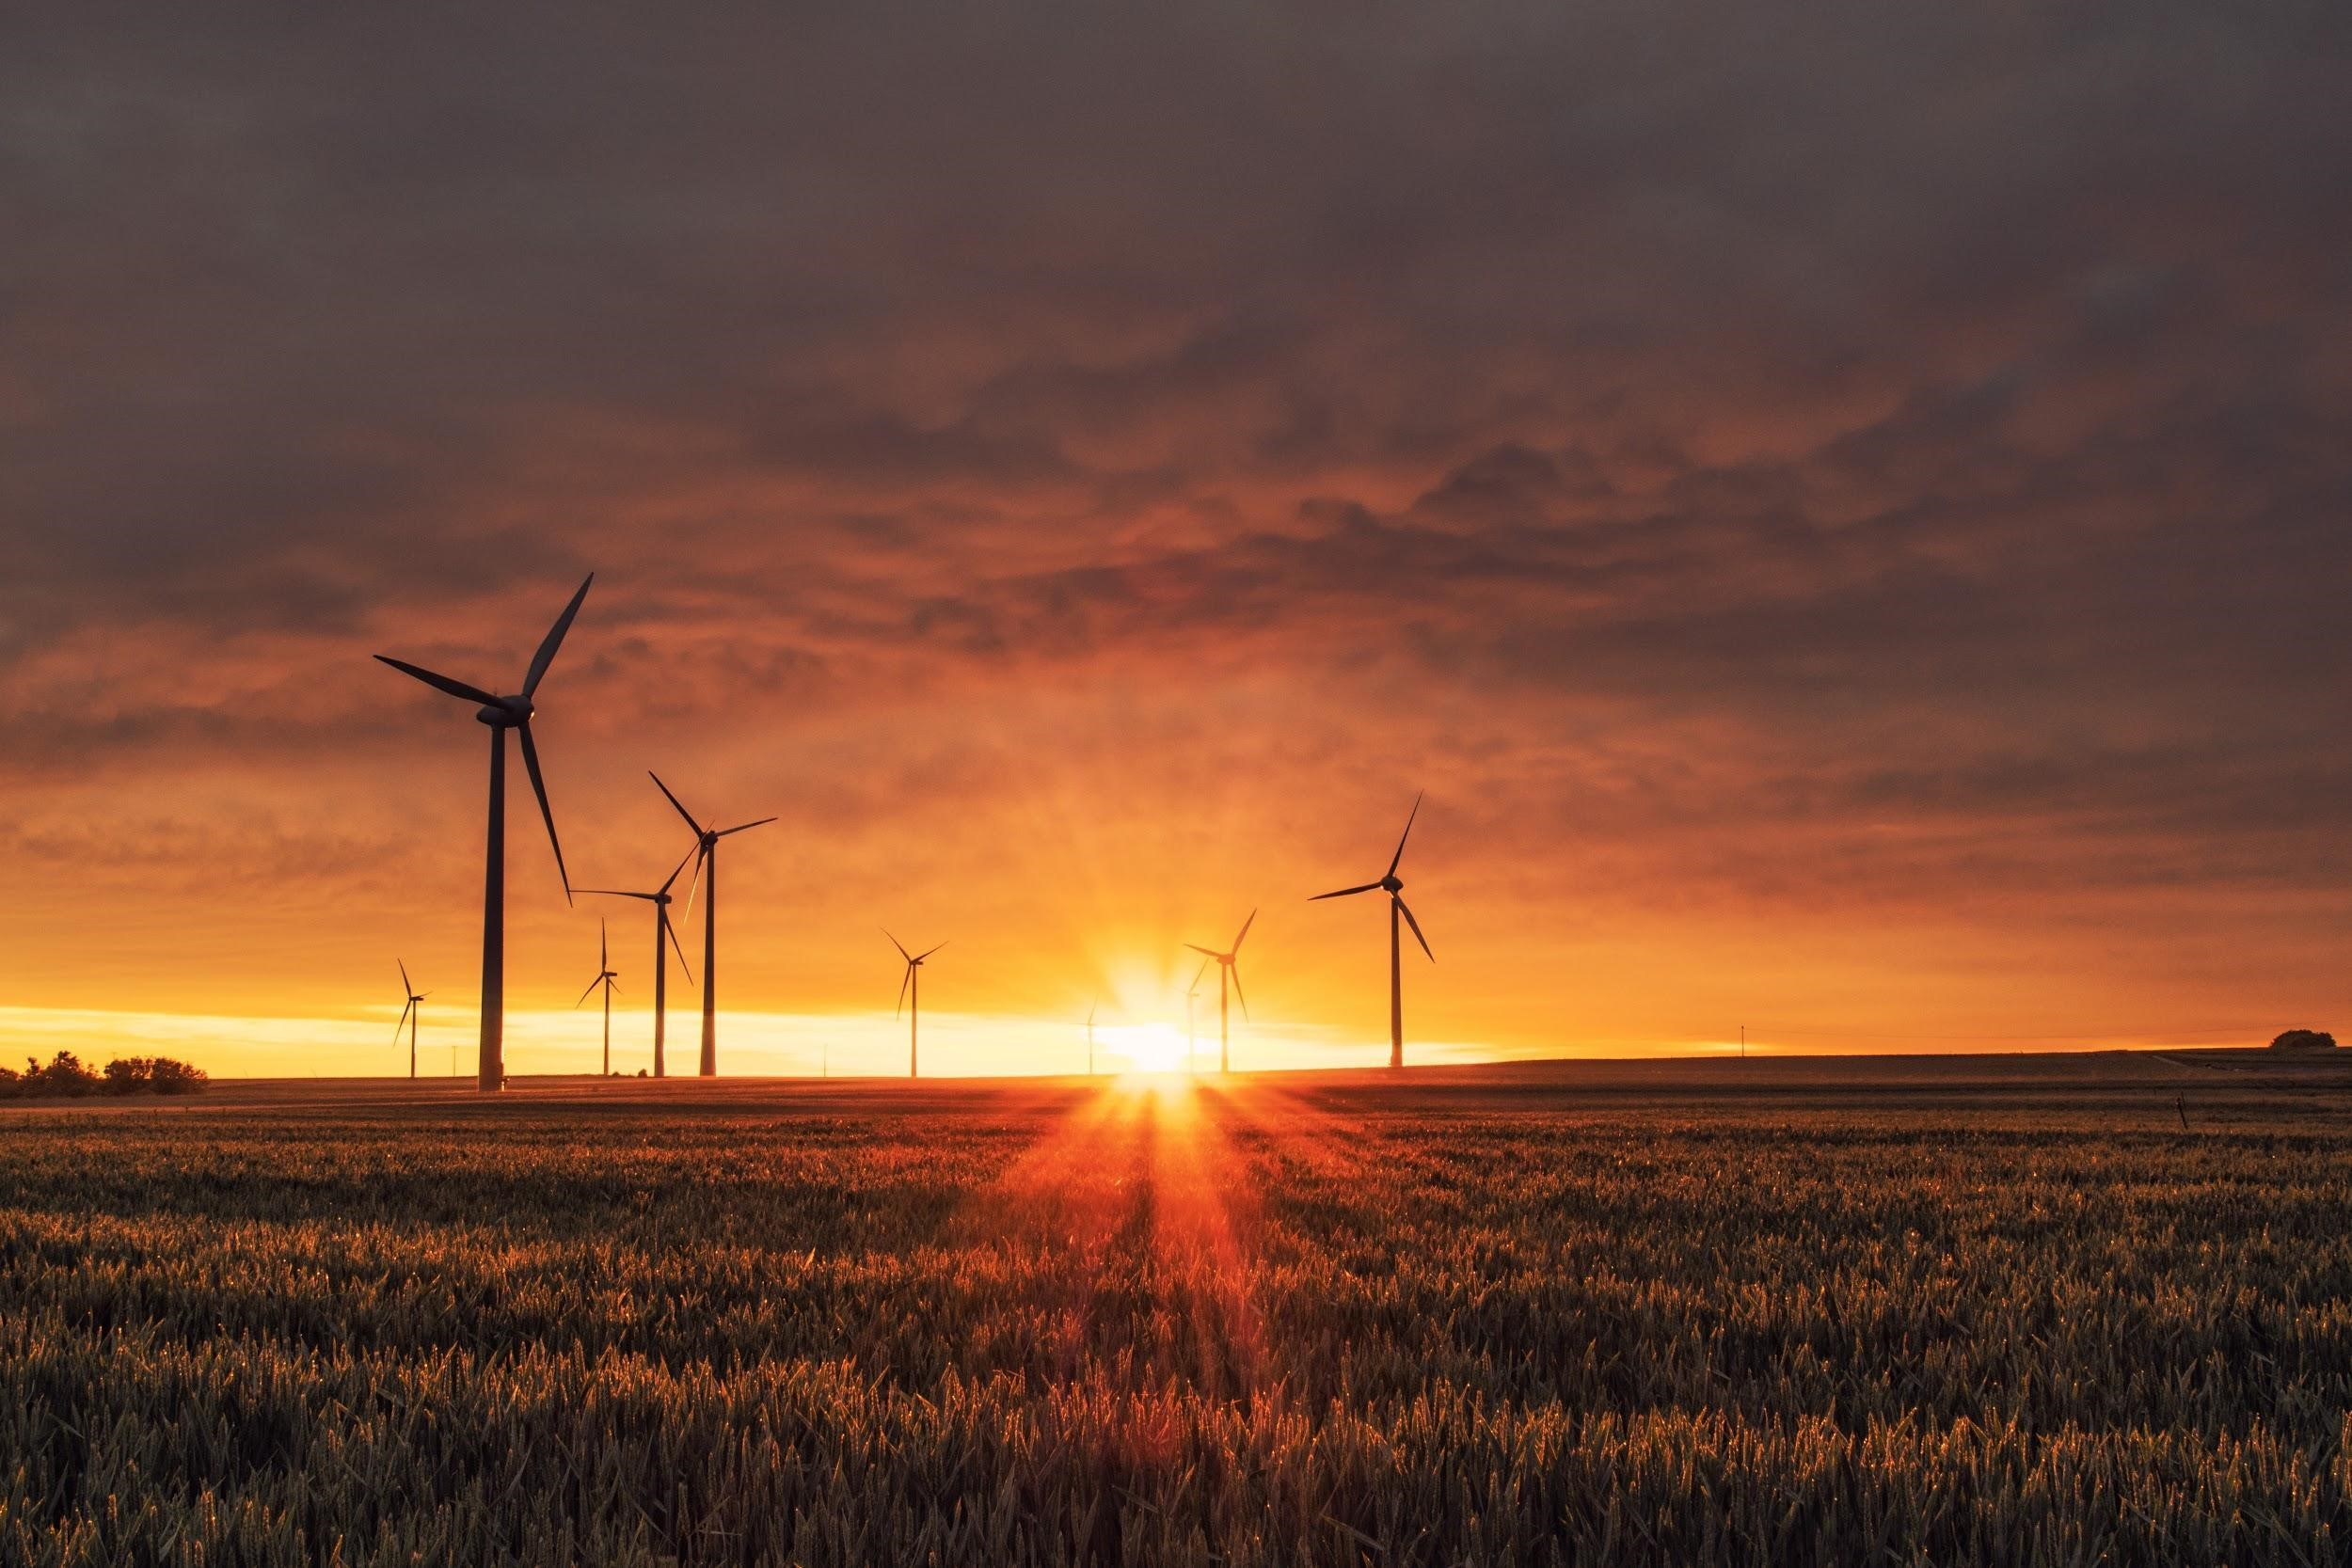 Sunset view of wind turbines in Germany